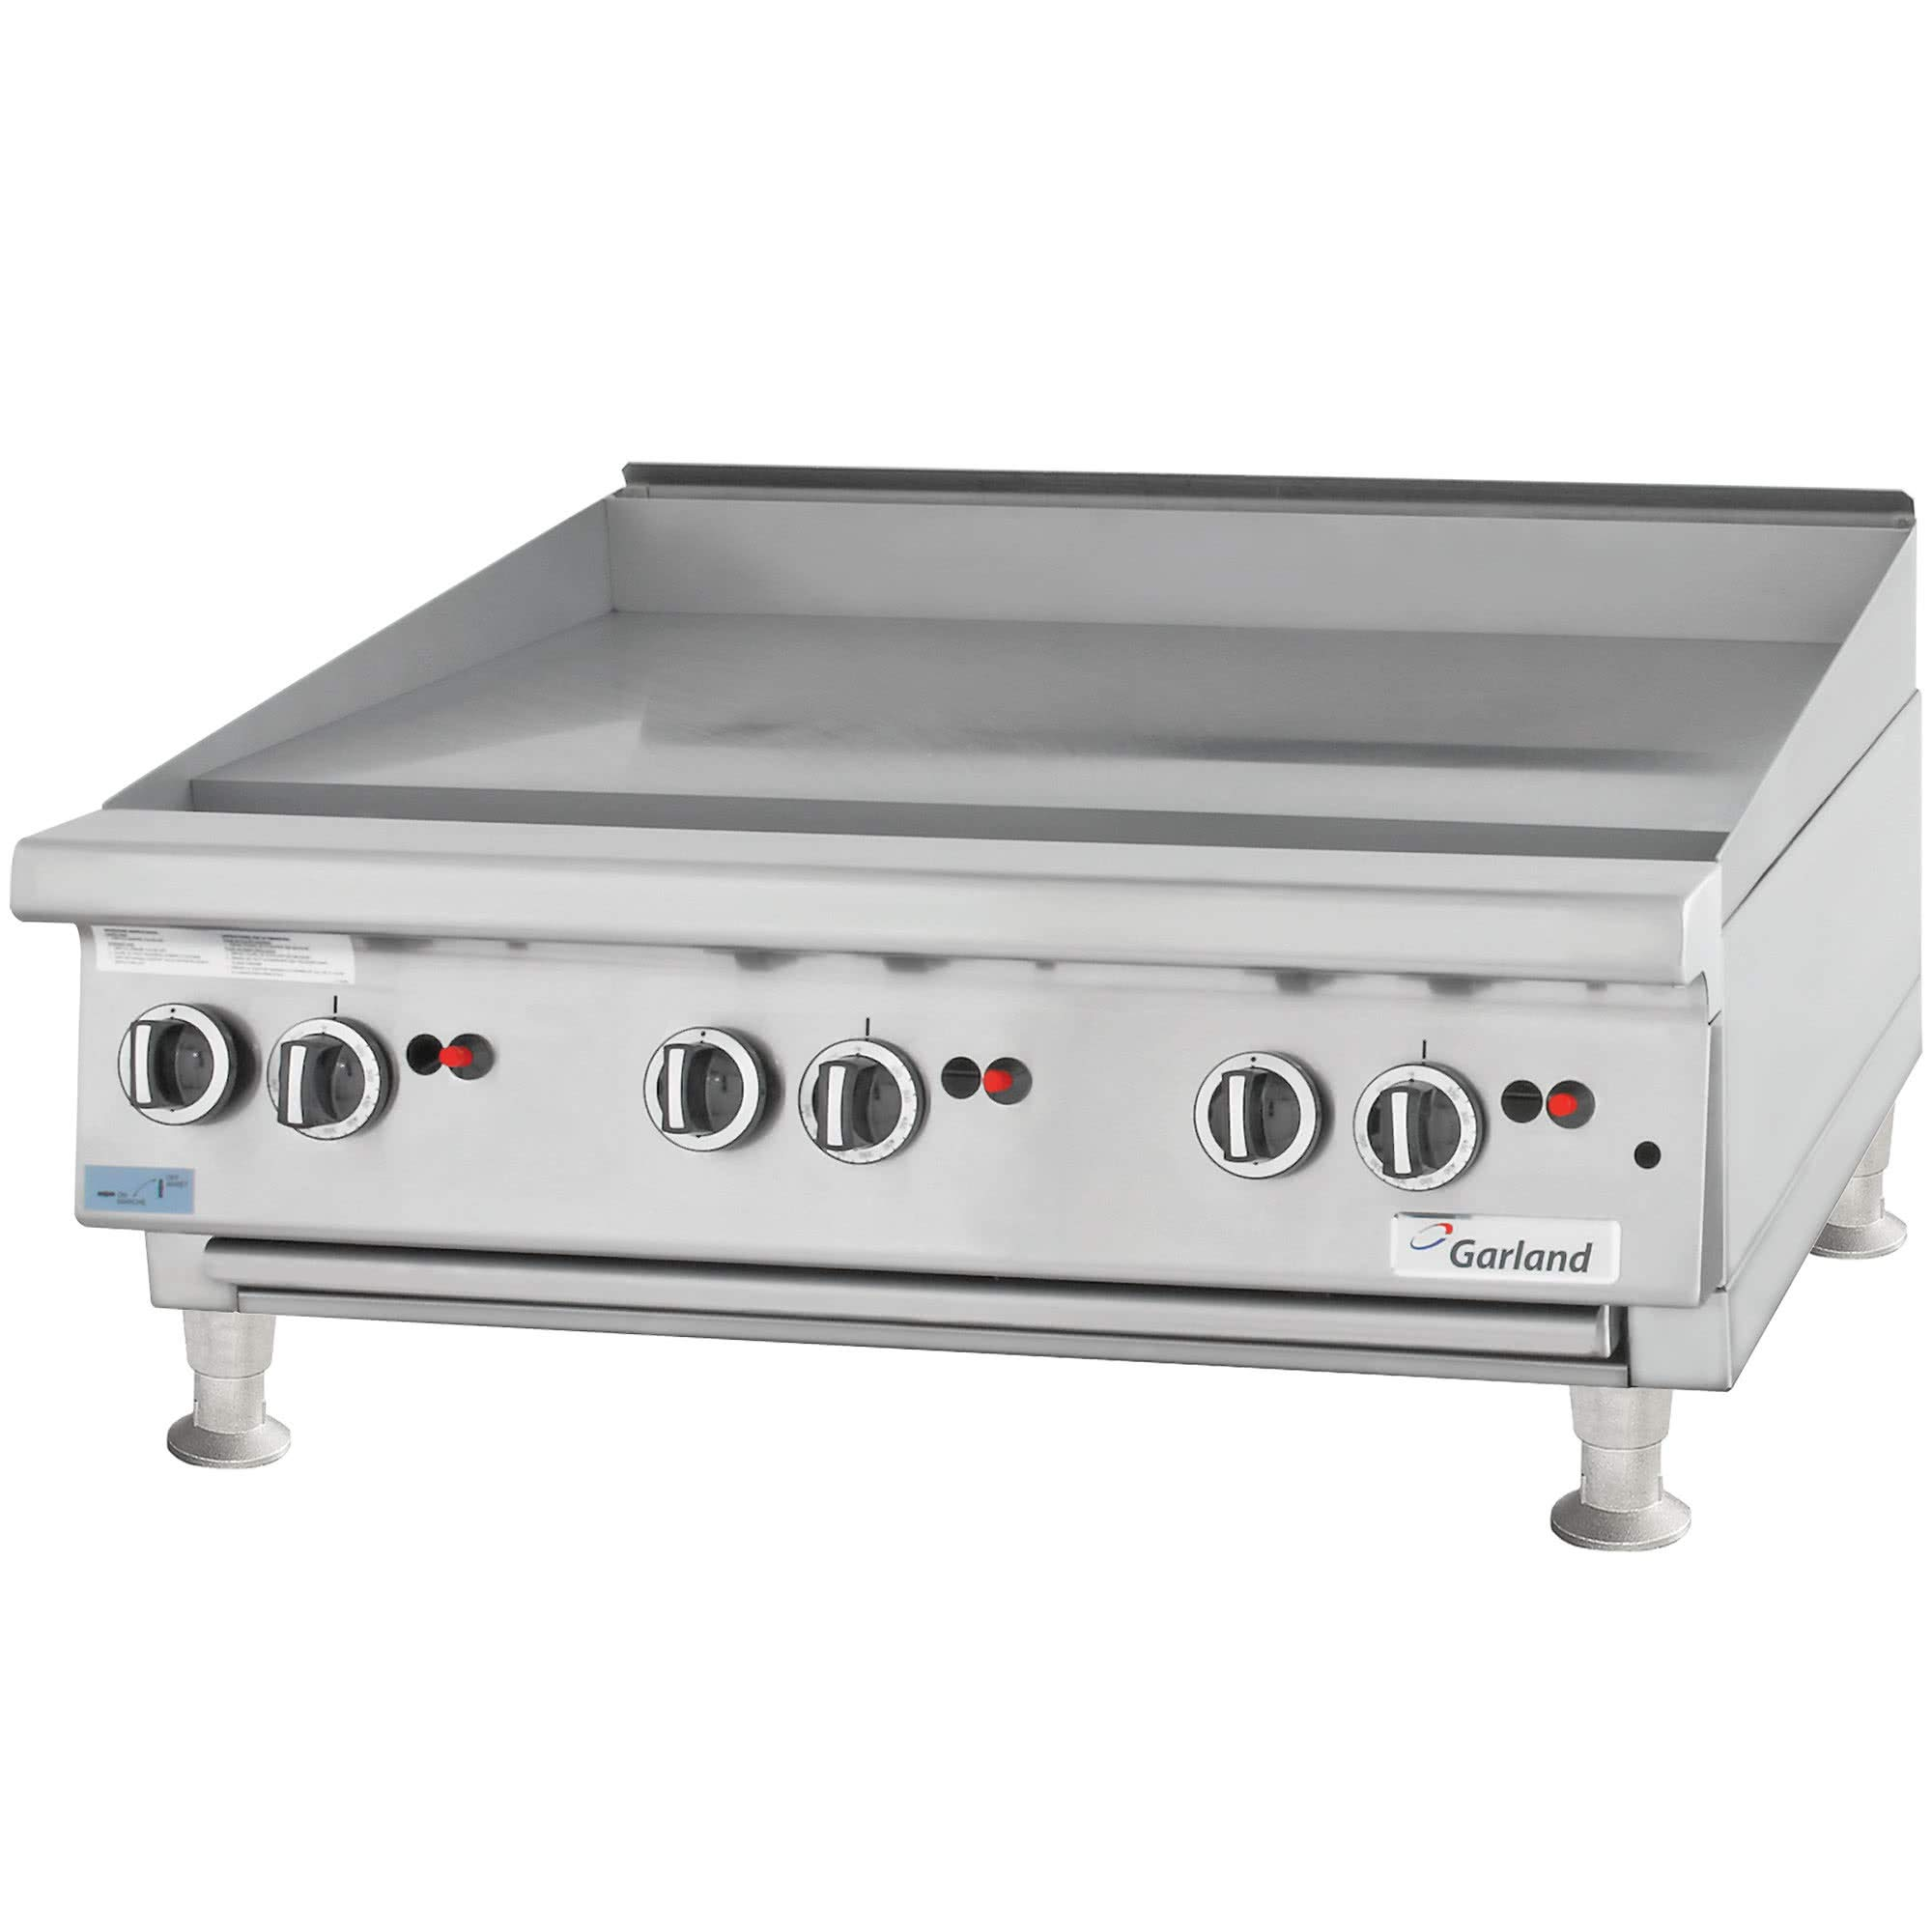 TableTop King GTGG24-G24M Liquid Propane 24'' Countertop Griddle with Manual Controls - 54,000 BTU